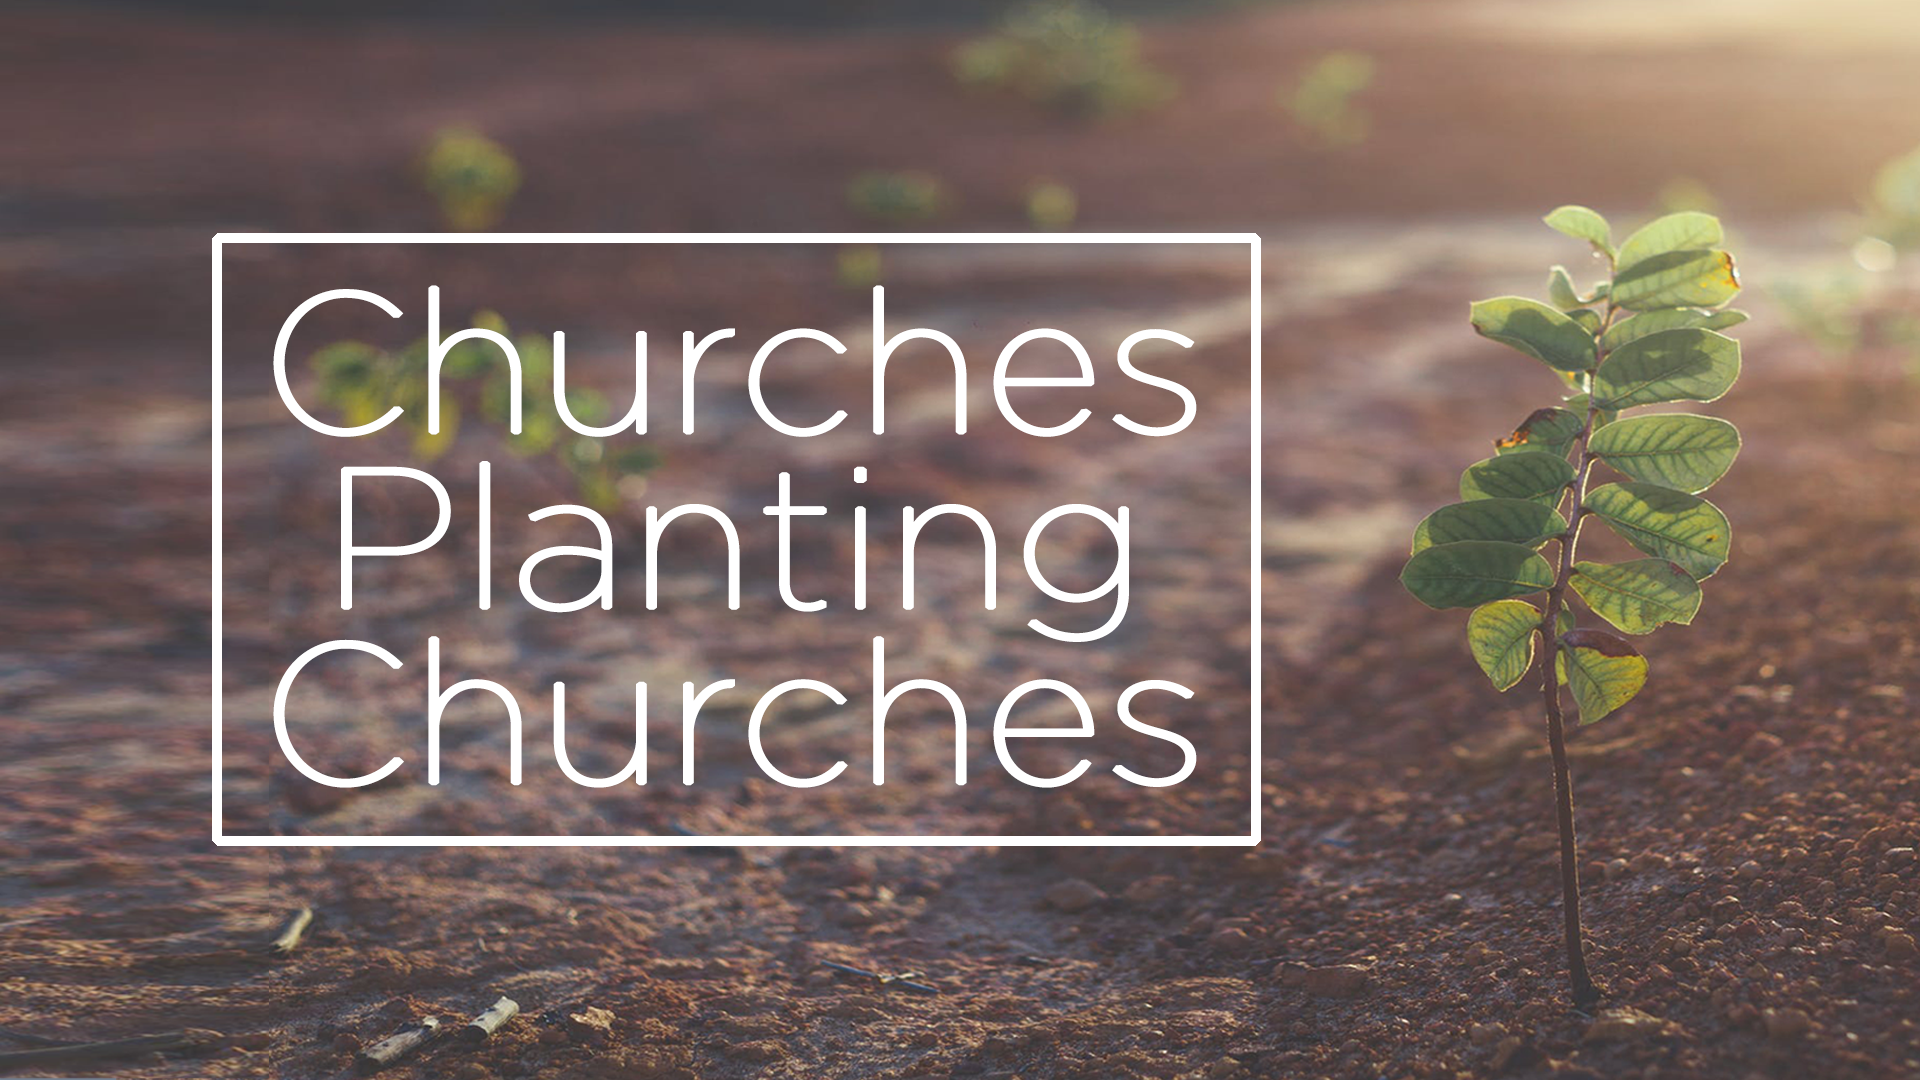 churches planting churches